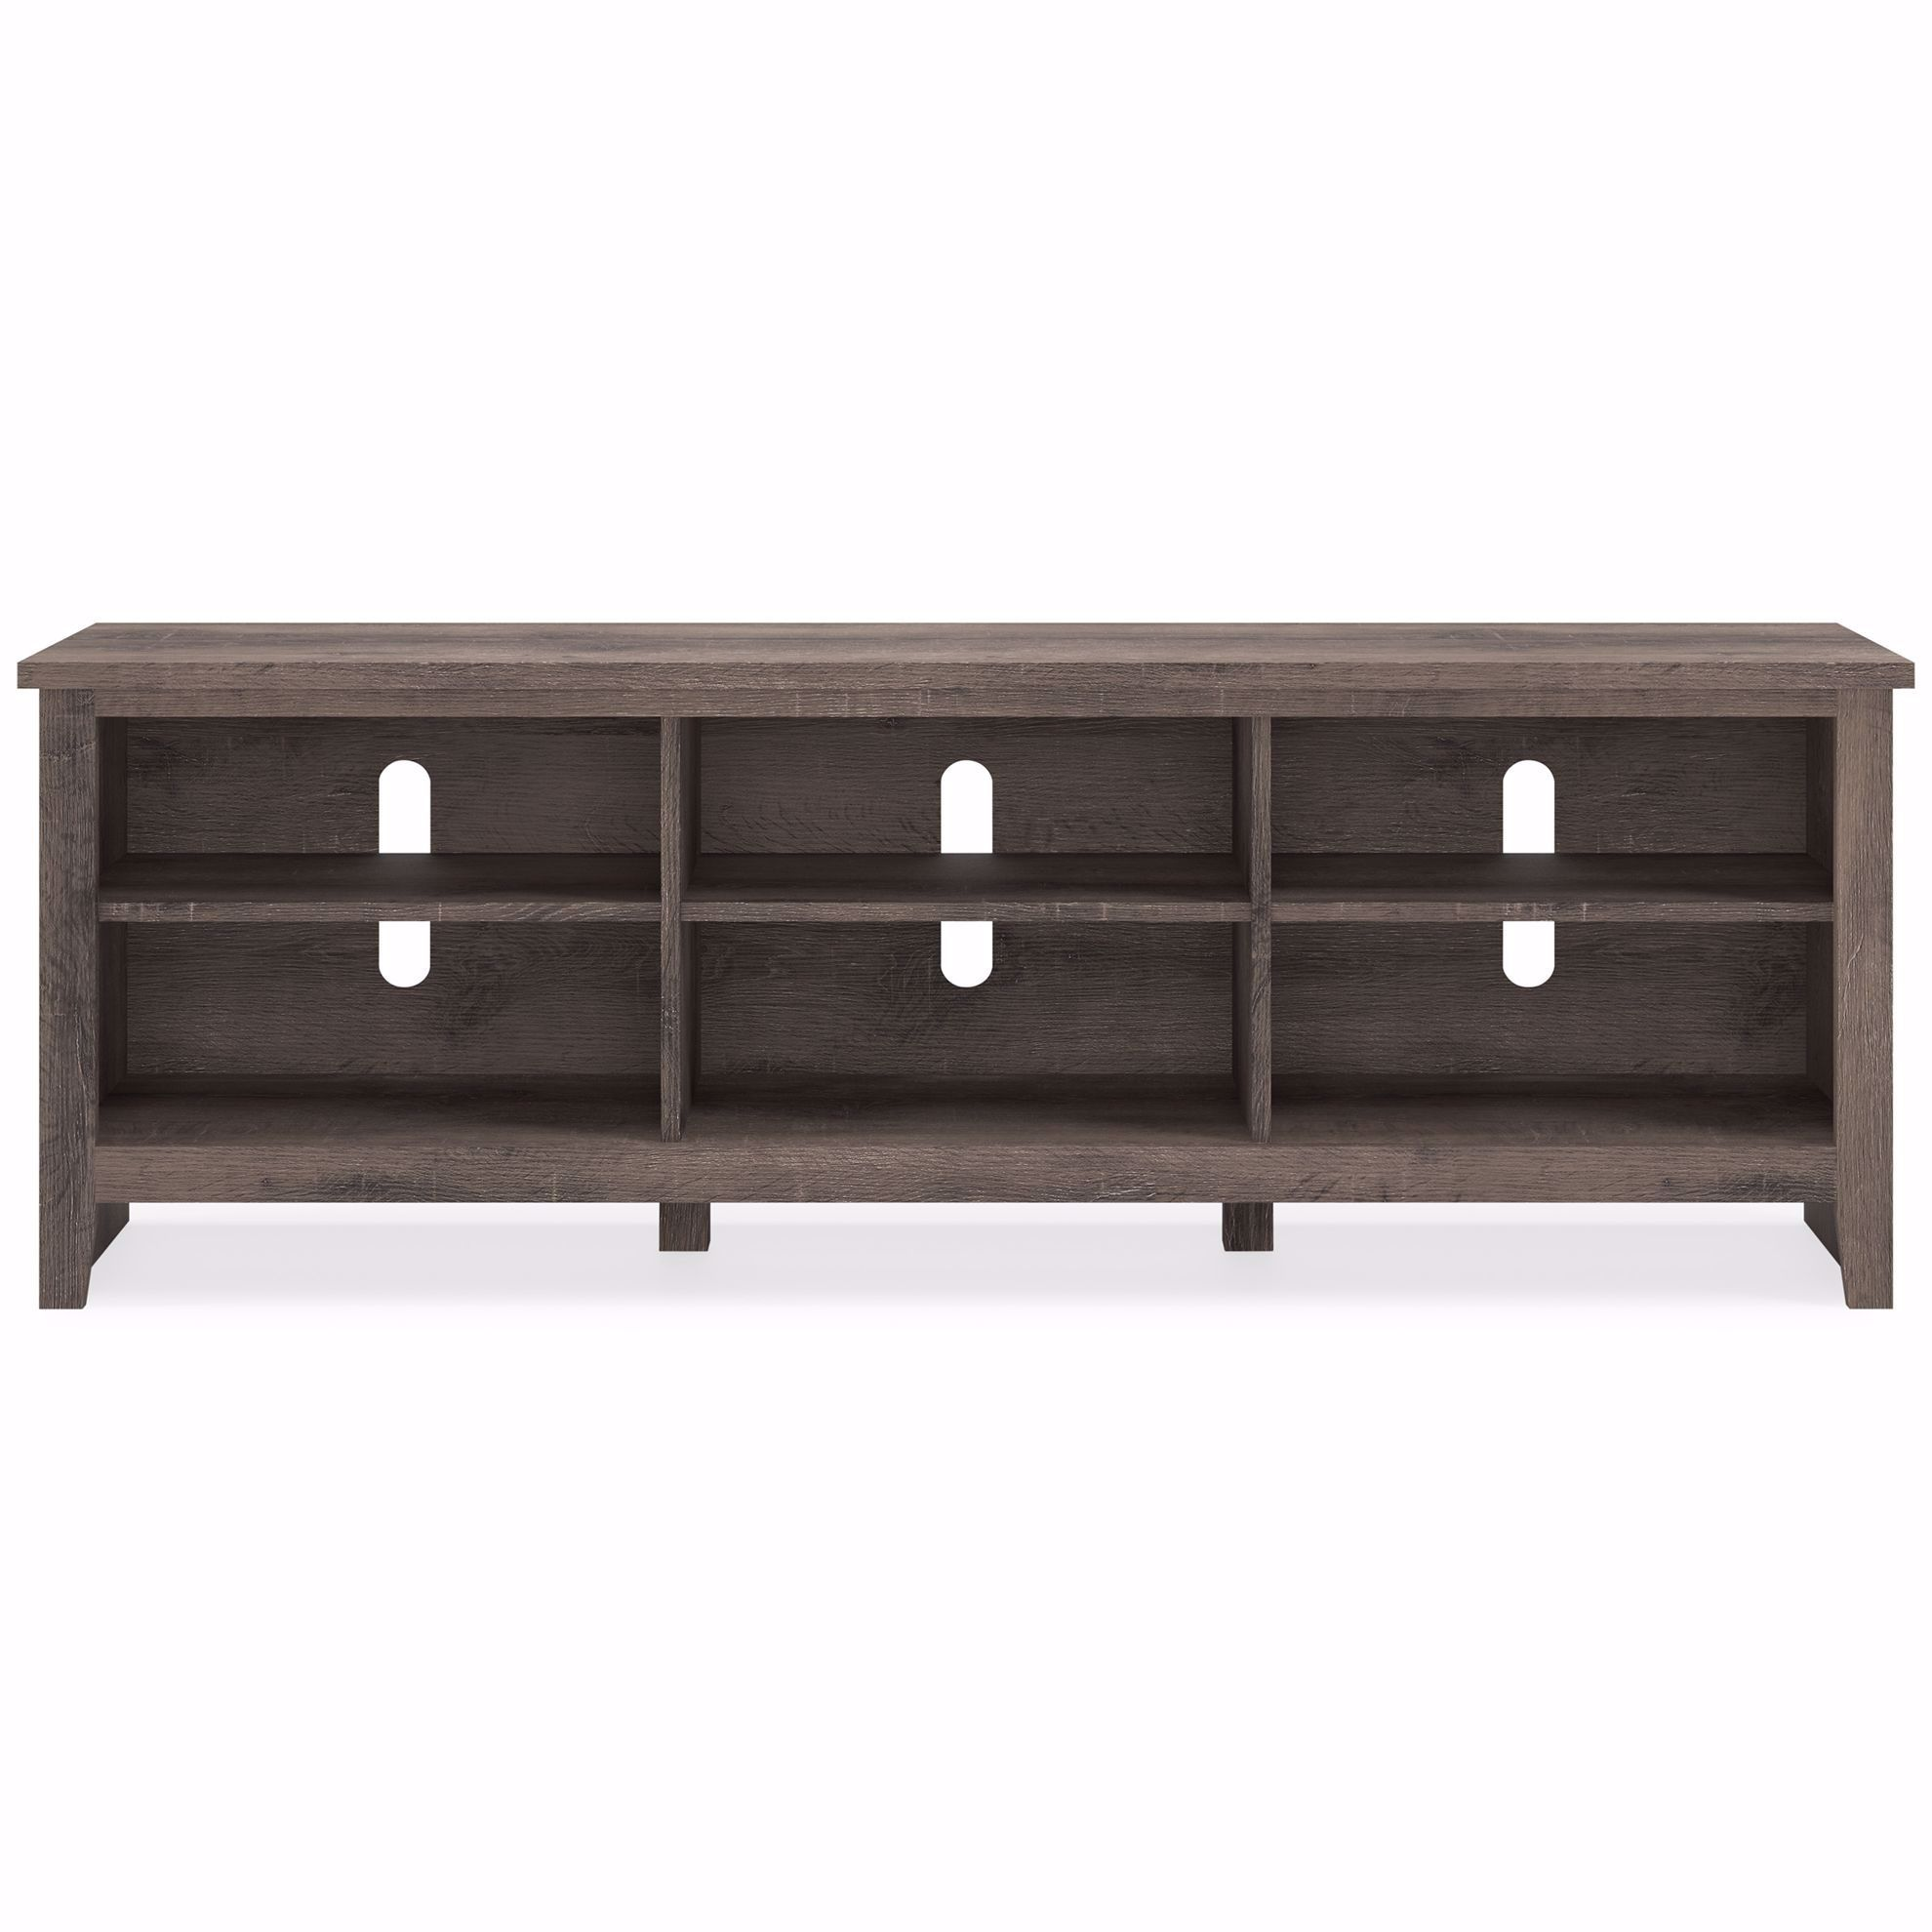 Picture of Arlenbry Extra Large TV Stand